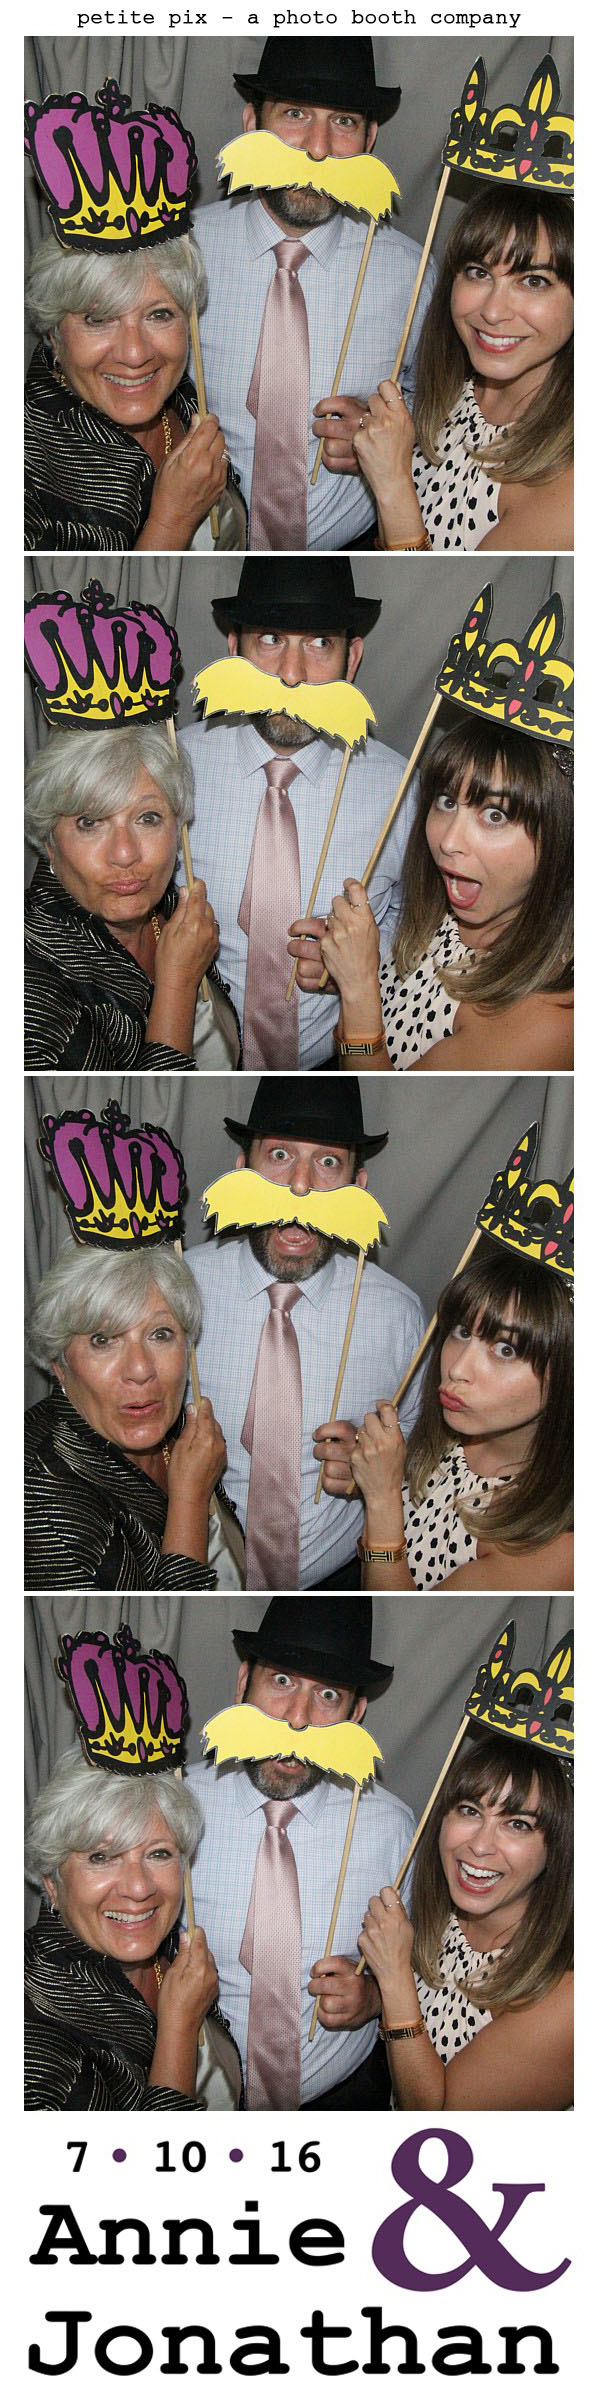 Petite Pix Classic Photo Booth at the Cicada Club in Downtown Los Angeles for Annie and Jonathan's Wedding 15